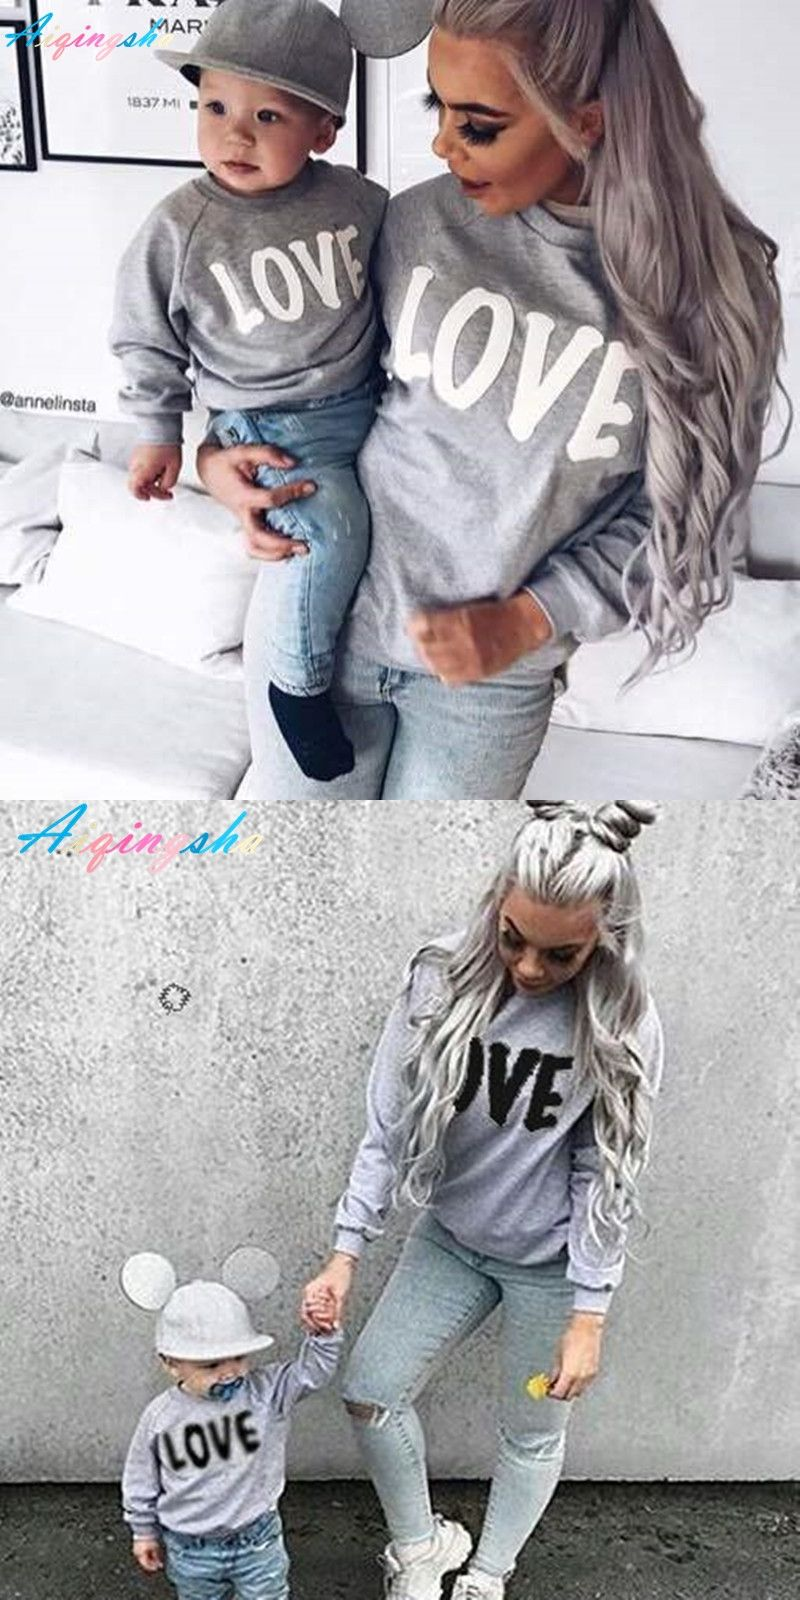 ab6d0c92f 2017 Autumn Winter Family Matching Sweatshirt Sweaters Mom Mother ...